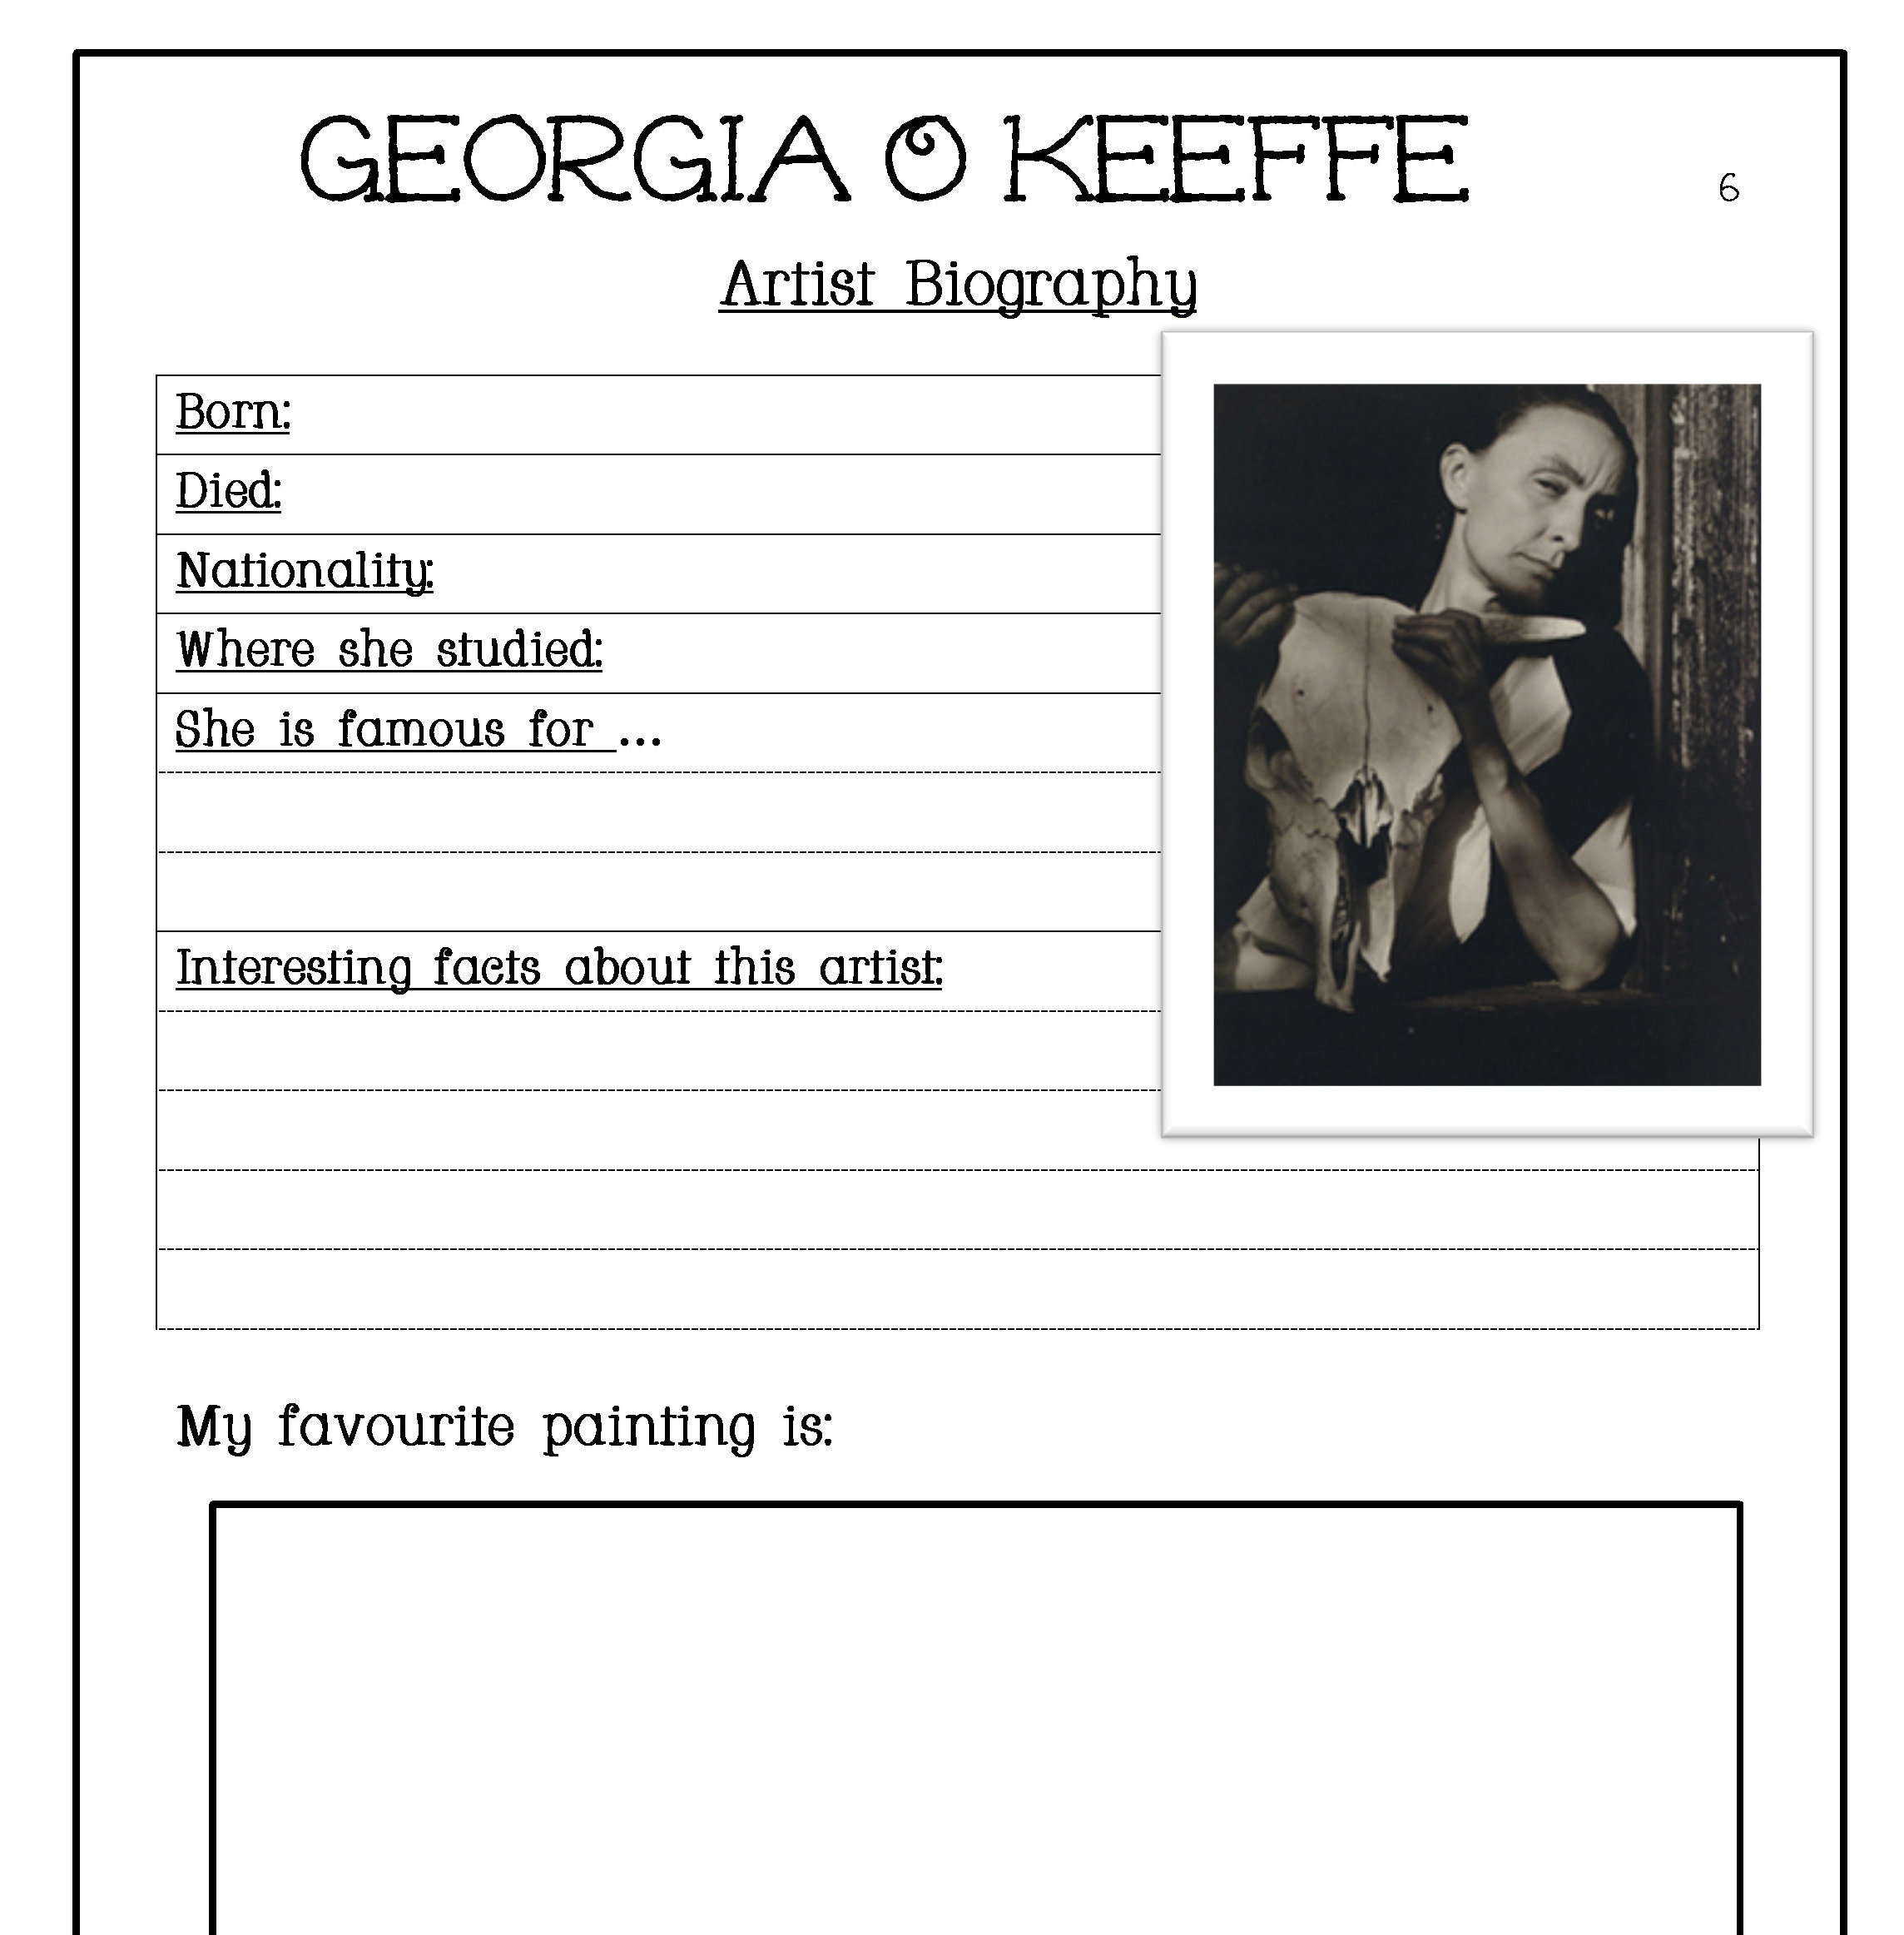 Georgia Worksheets For Kids